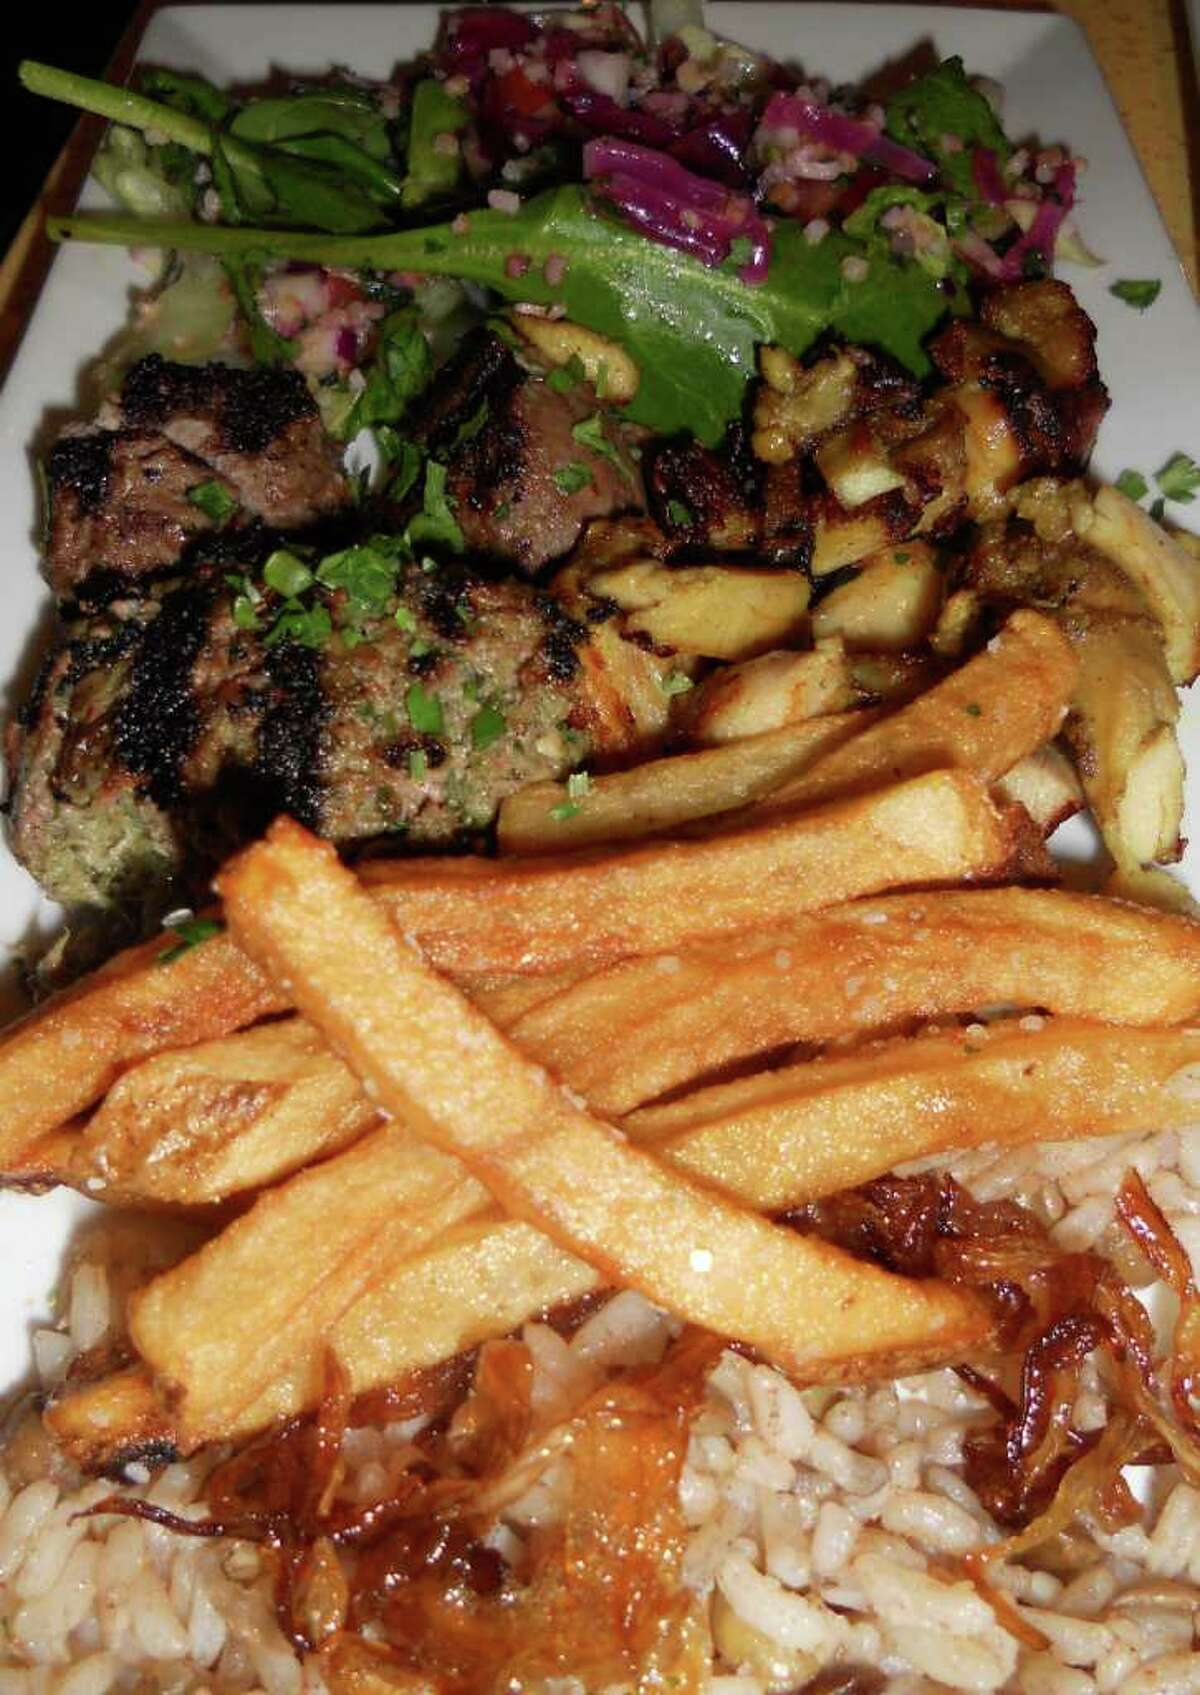 Kofta, chicken shawarma and even hand-cut French fries are on the menu at the new Tabouli Grill in Southport.